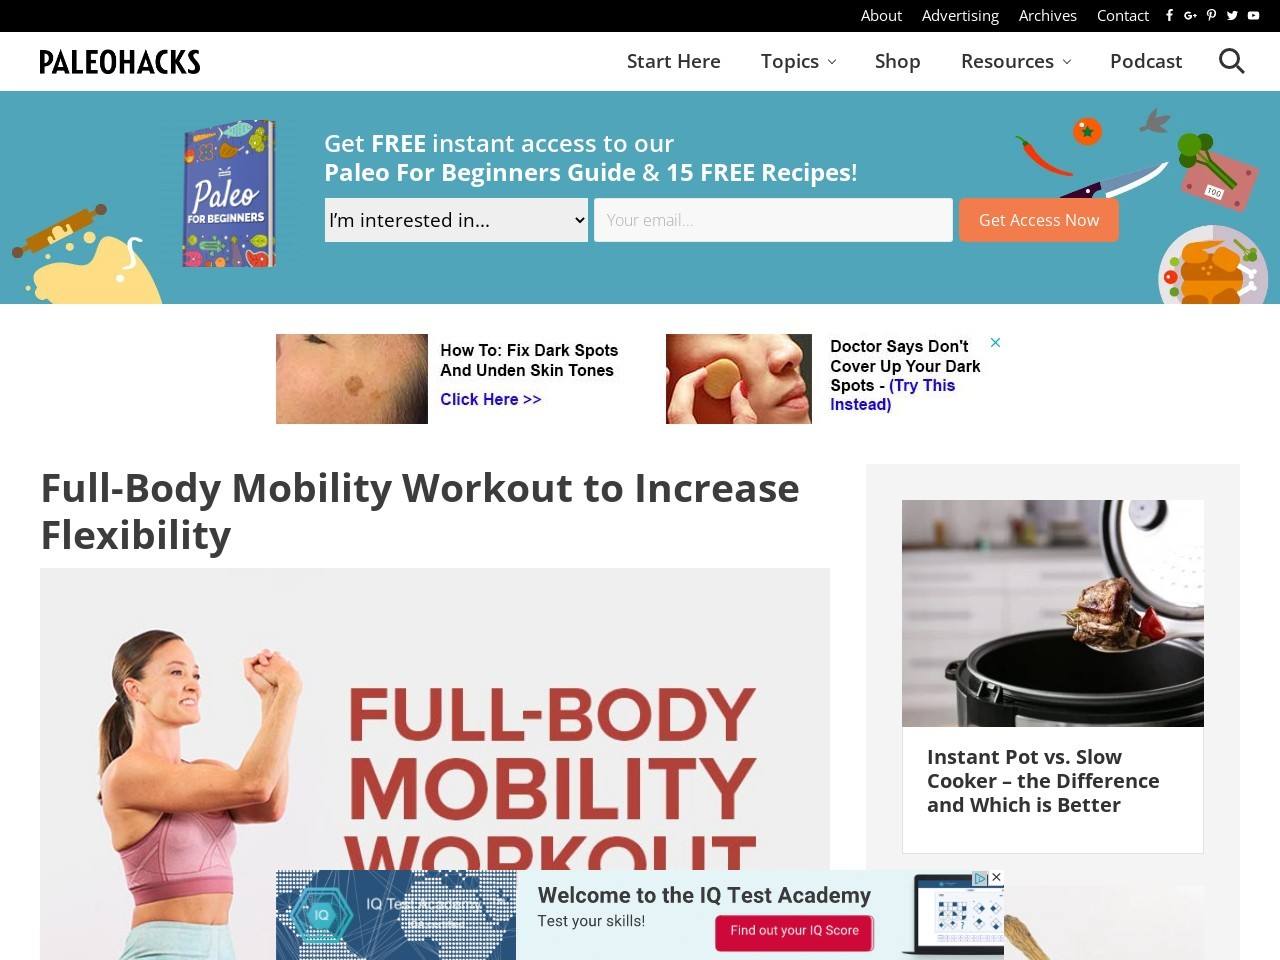 Full-Body Mobility Workout to Increase Flexibility